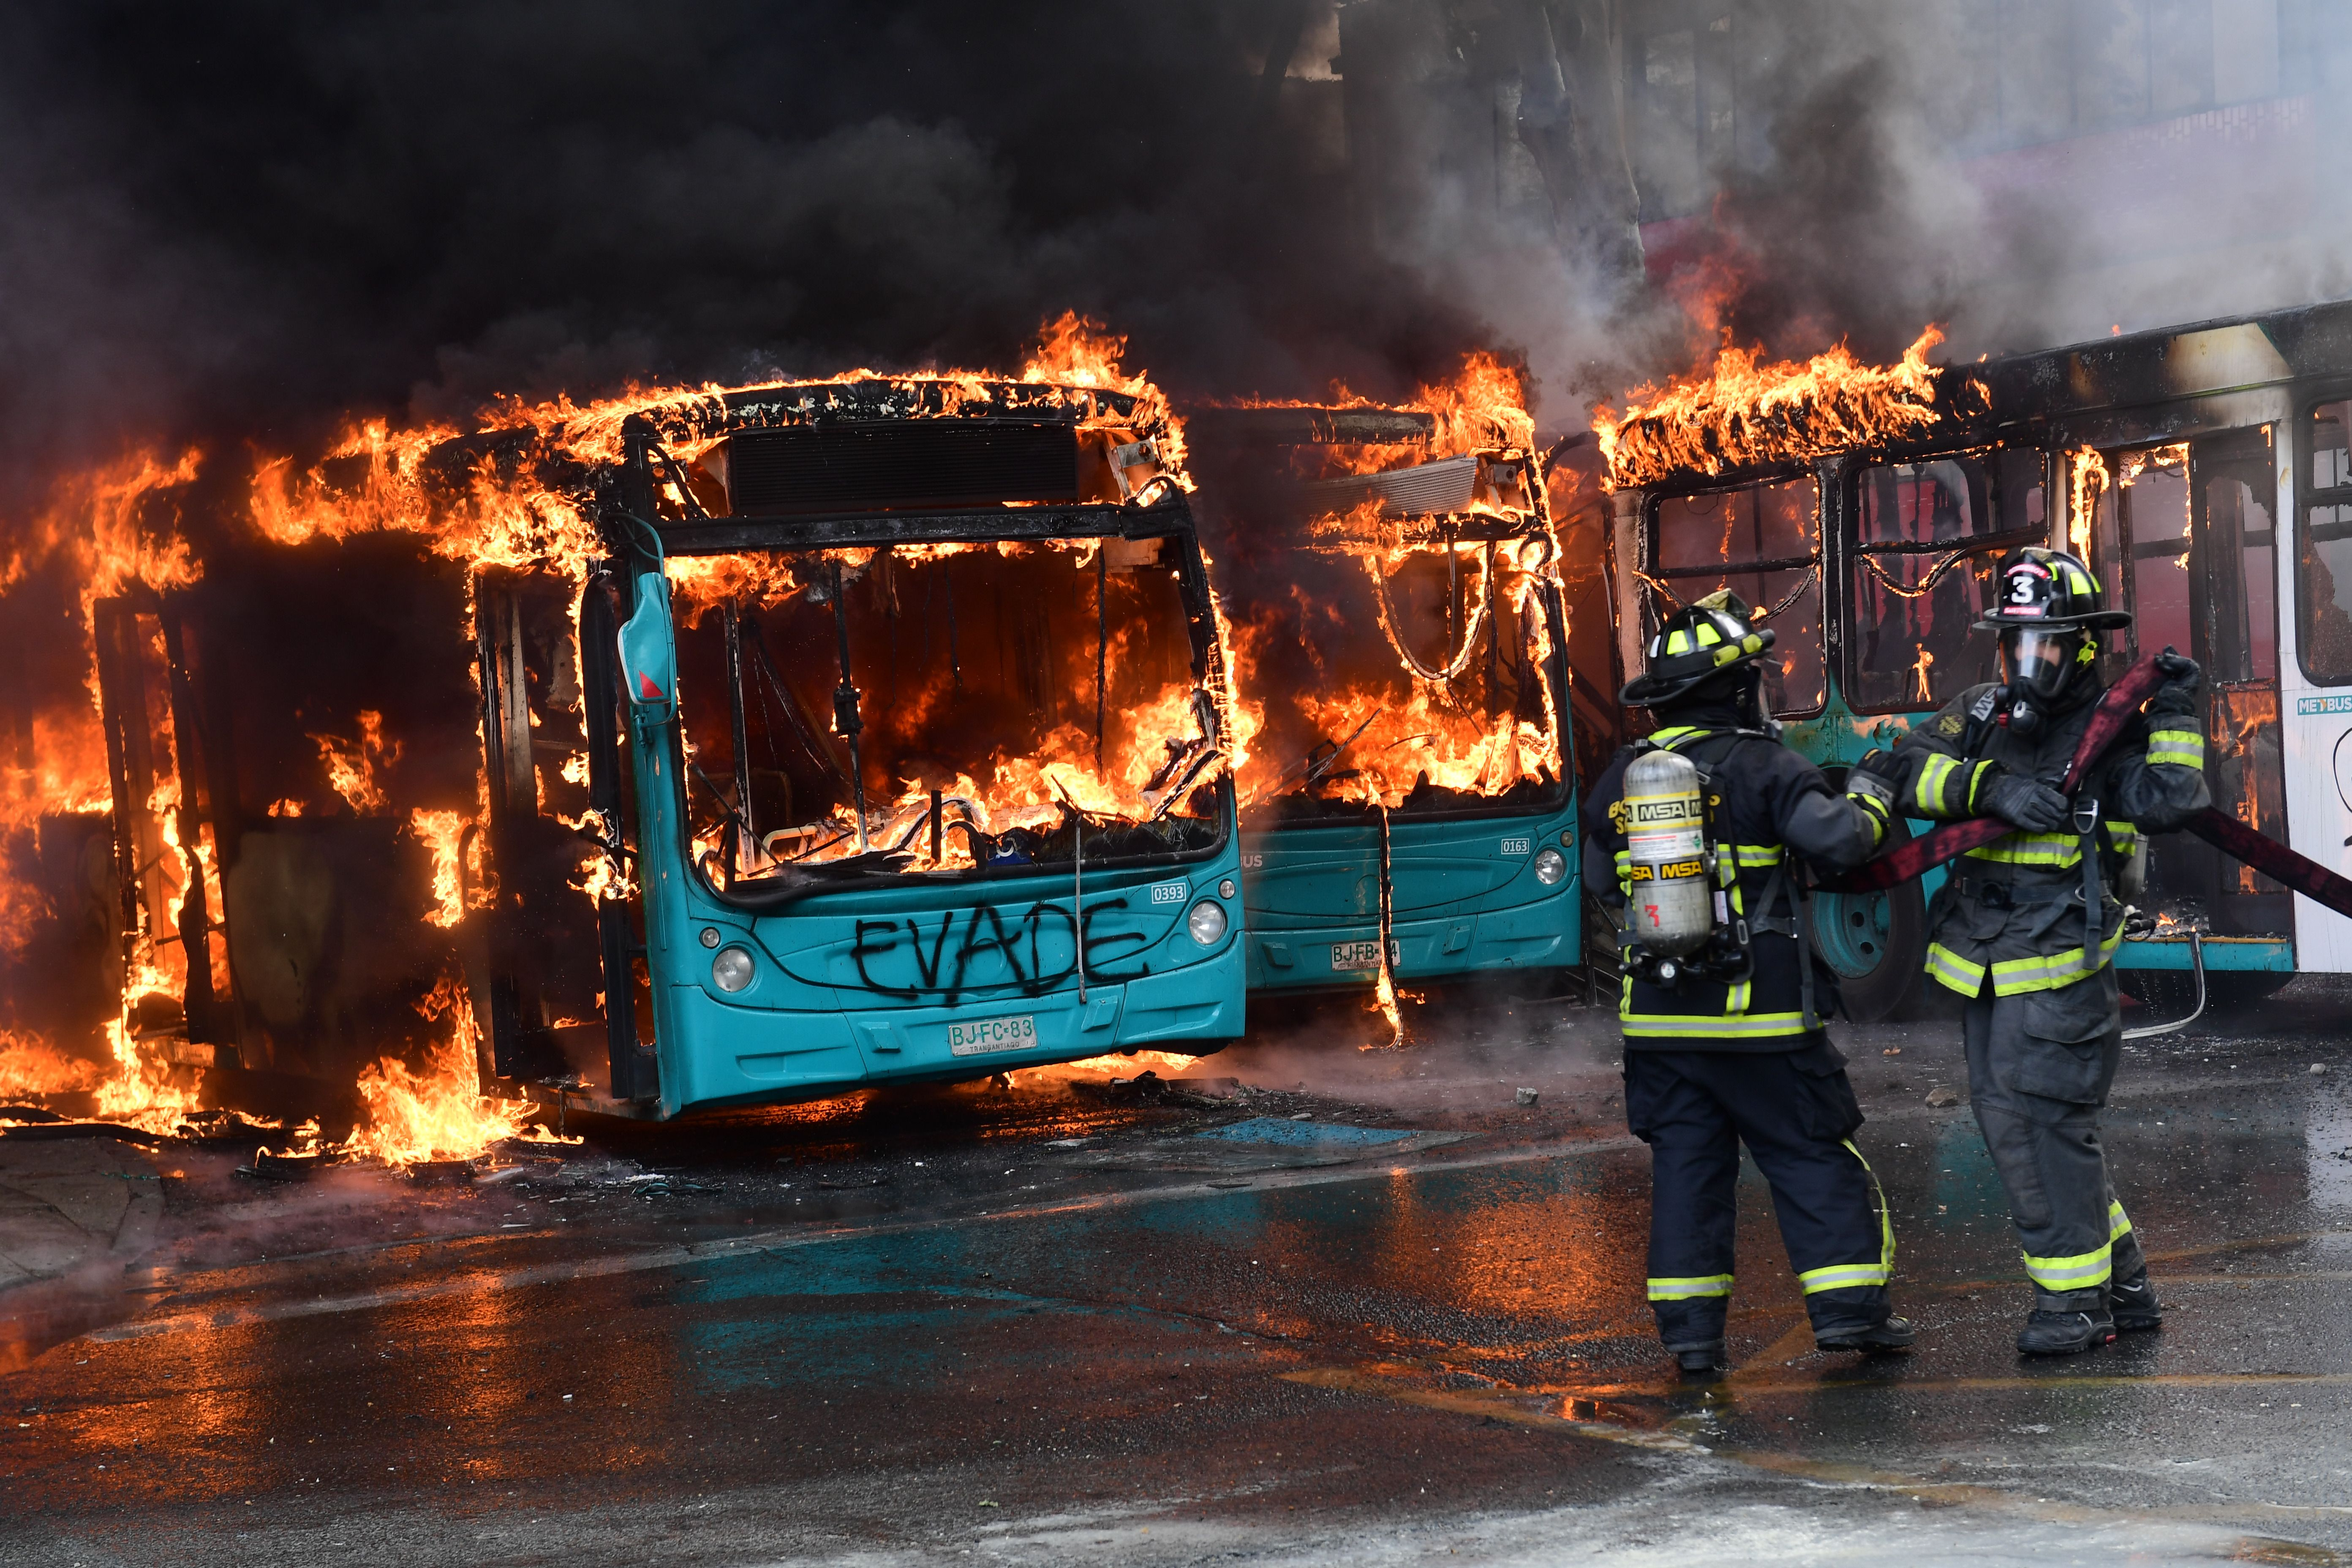 TOPSHOT - Chilean firefighters extinguish a burning bus during clashes between protesters and the riot police in Santiago, on October 19, 2019. - Chile's president declared a state of emergency in Santiago Friday night and gave the military responsibility for security after a day of violent protests over an increase in the price of metro tickets. (Photo by Martin BERNETTI / AFP) (Photo by MARTIN BERNETTI/AFP via Getty Images)